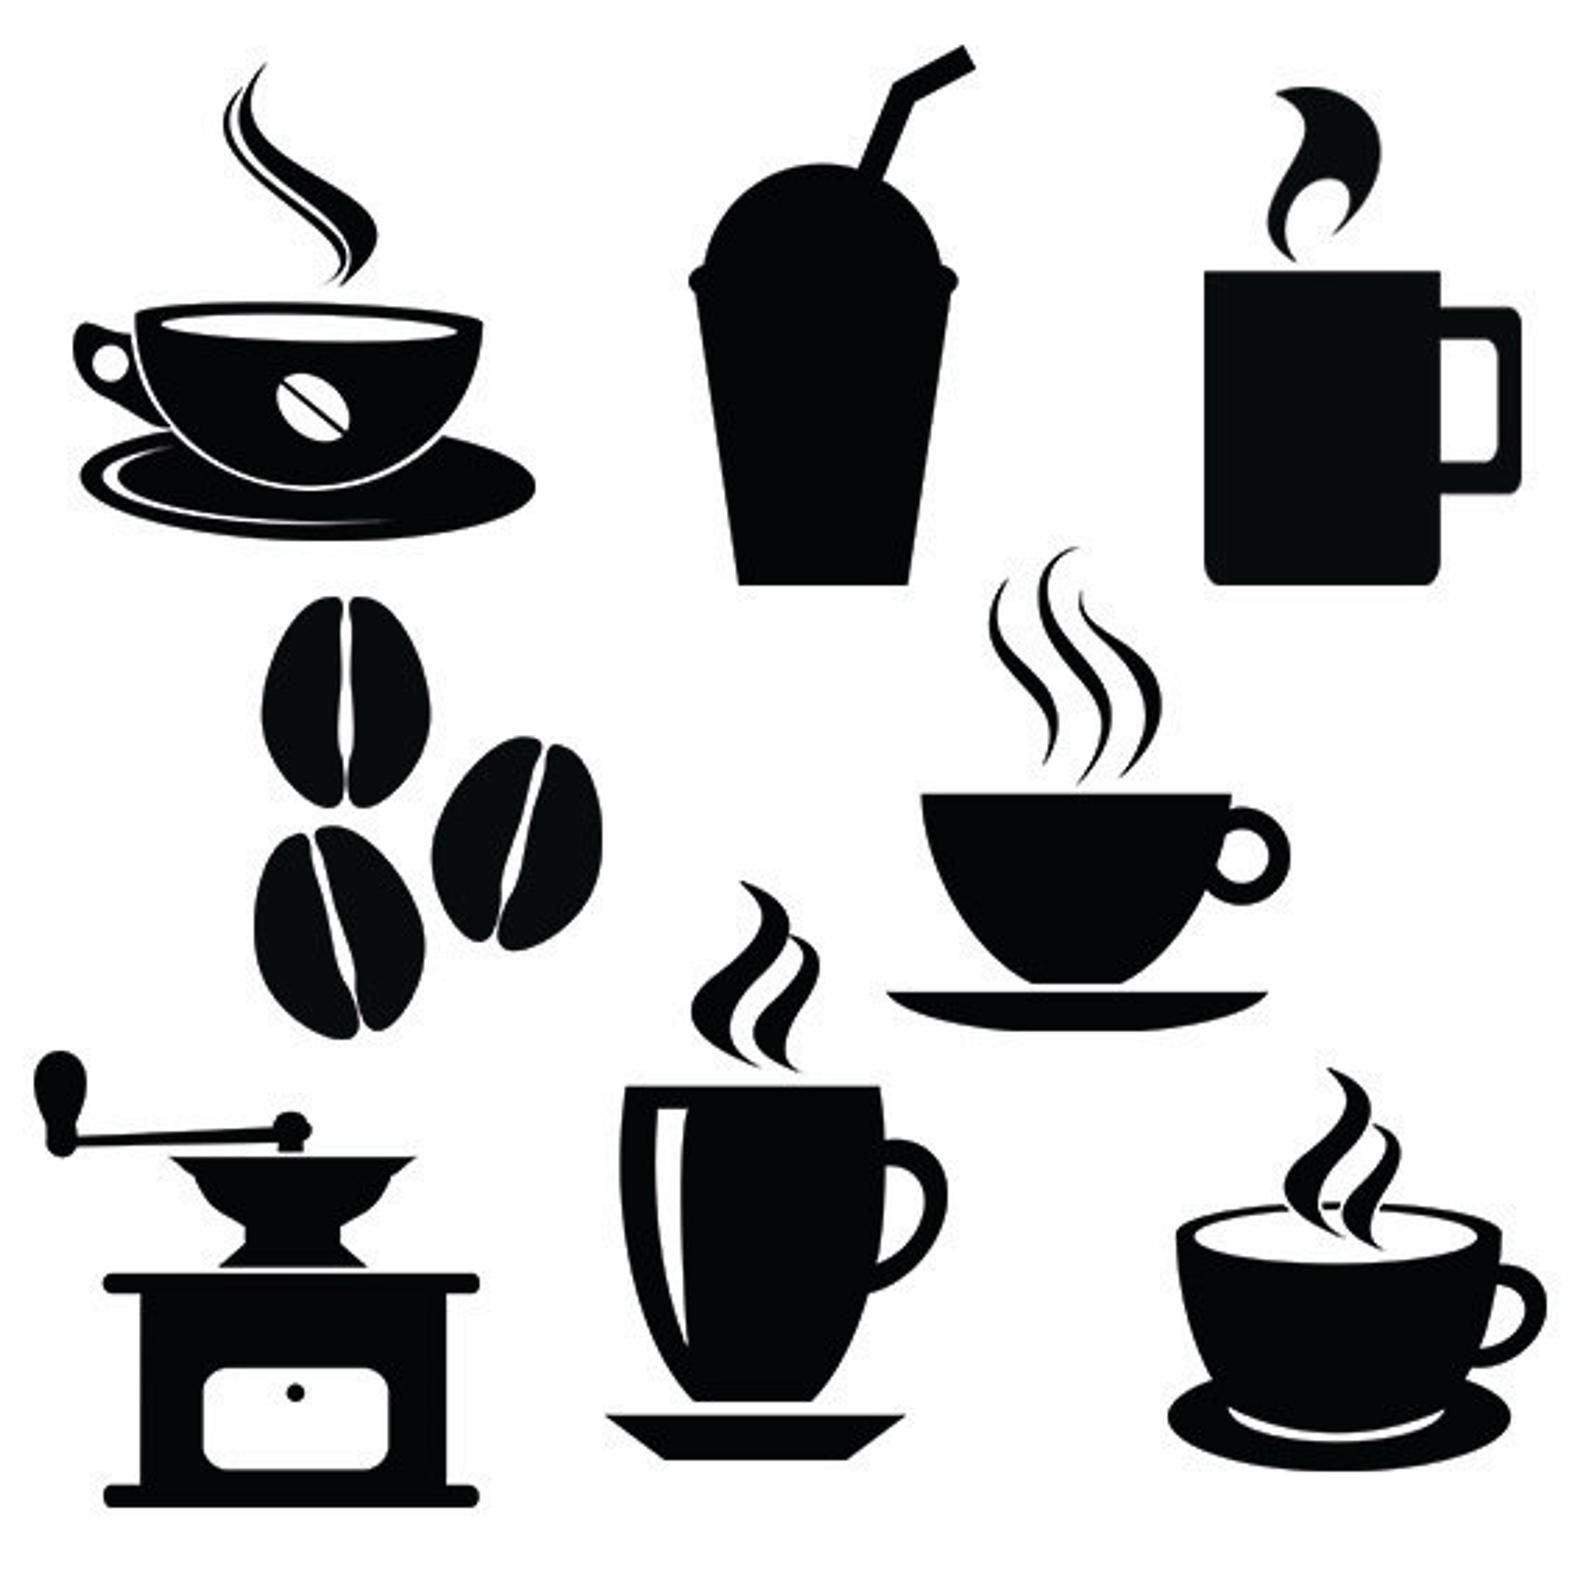 Coffee Svg Silhouette Files Pack Cafe Vector Clipart Digital Etsy Coffee Svg Coffee Shop Decor Coffee Cup Art